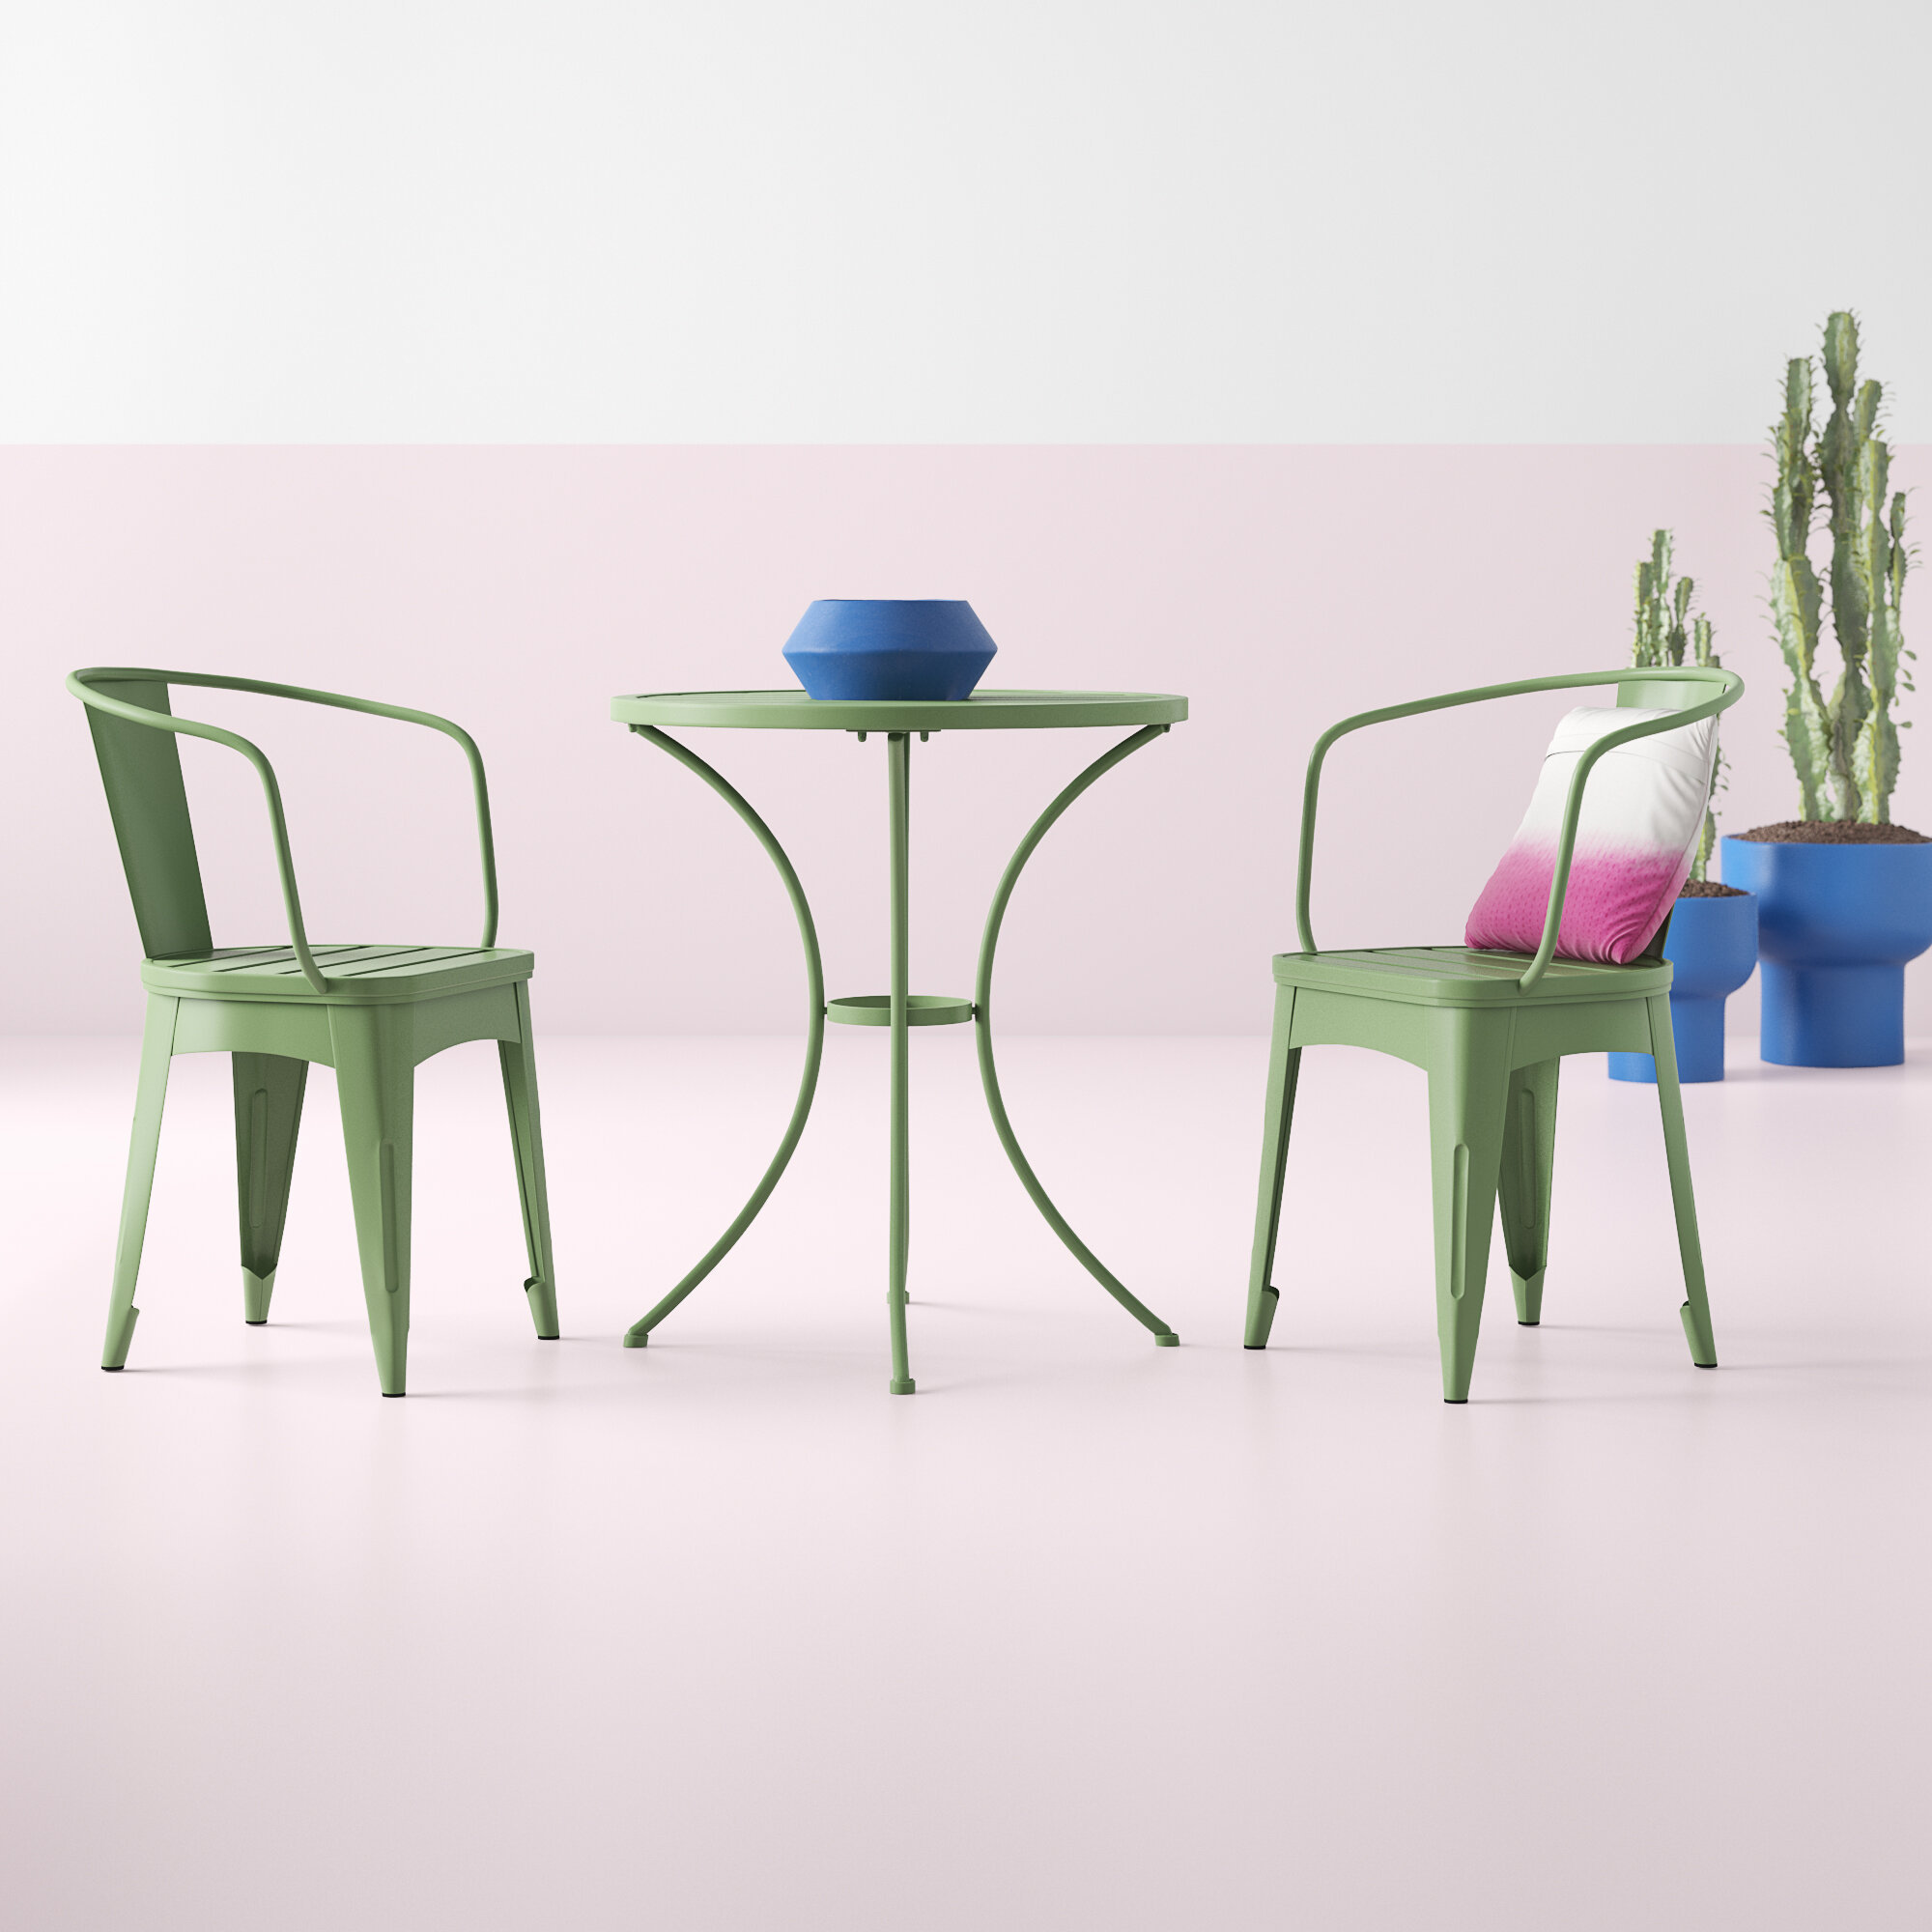 Two Person Patio Dining Sets You Ll Love In 2021 Wayfair These dining chair are trendy and can fit into every decoration style. restivo 3 piece bistro set with cushions